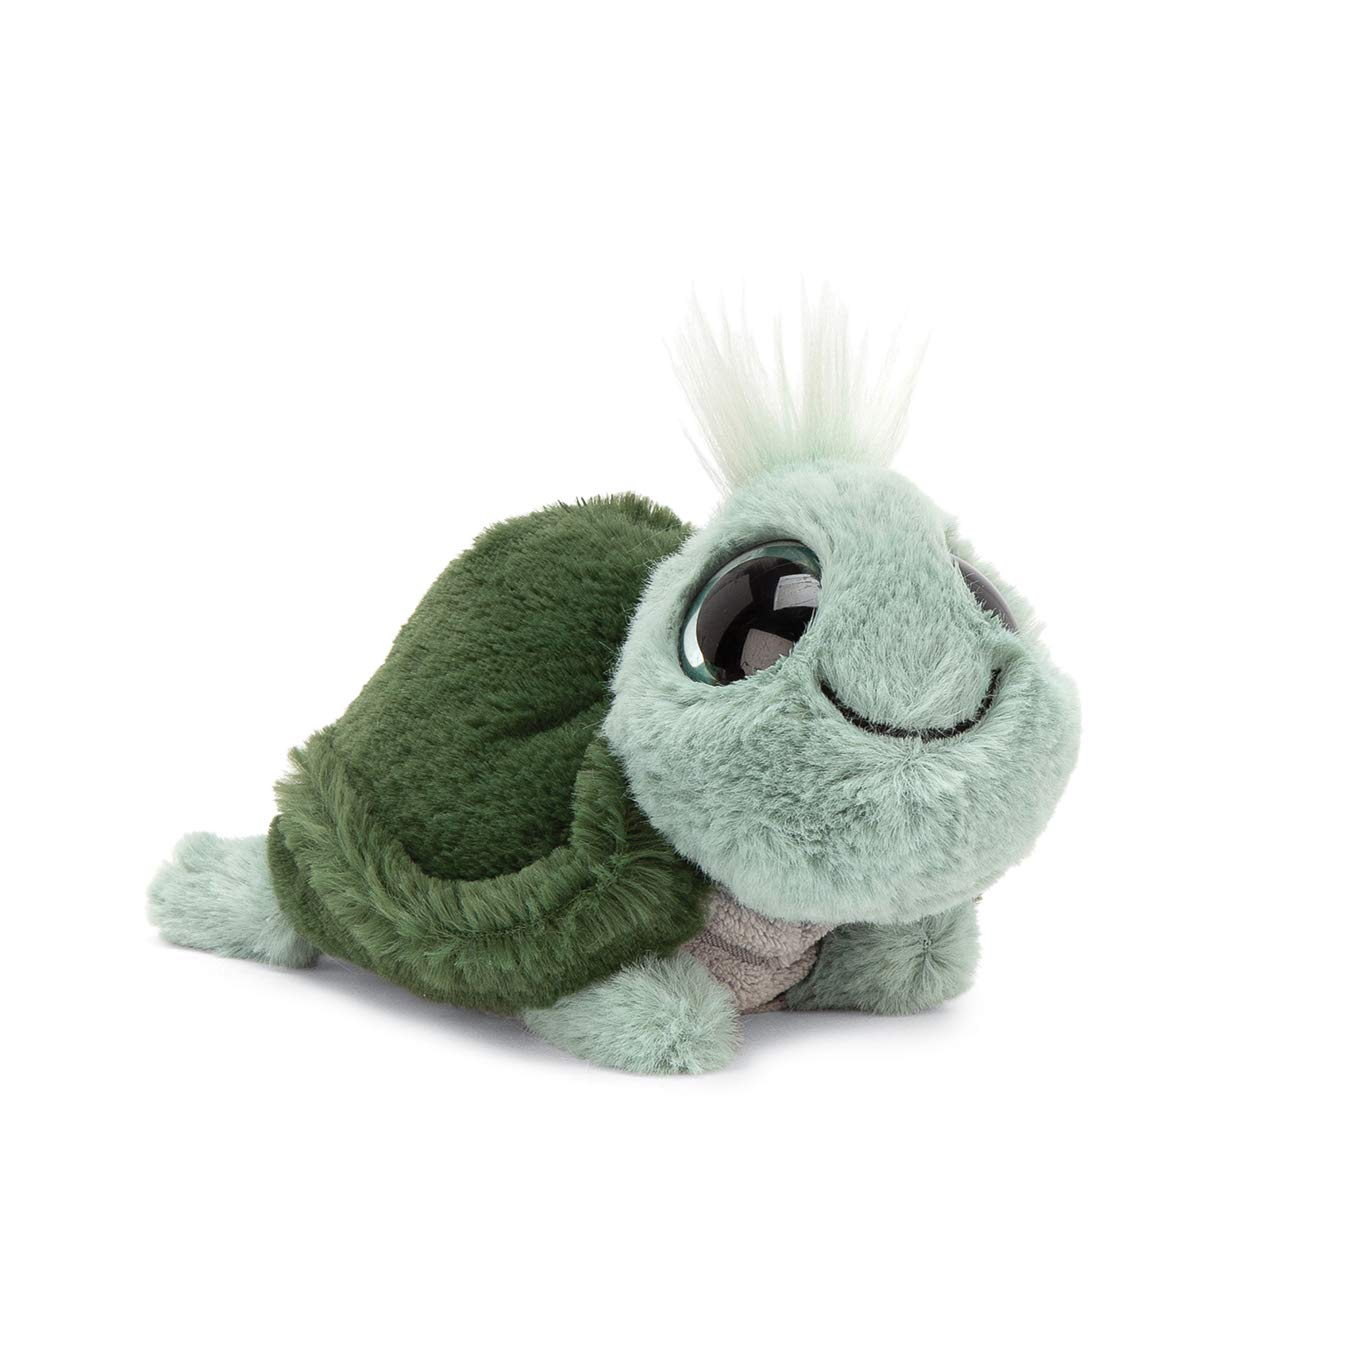 Jellycat Frizzles Tortoise Stuffed Animal, 3 inches Tall